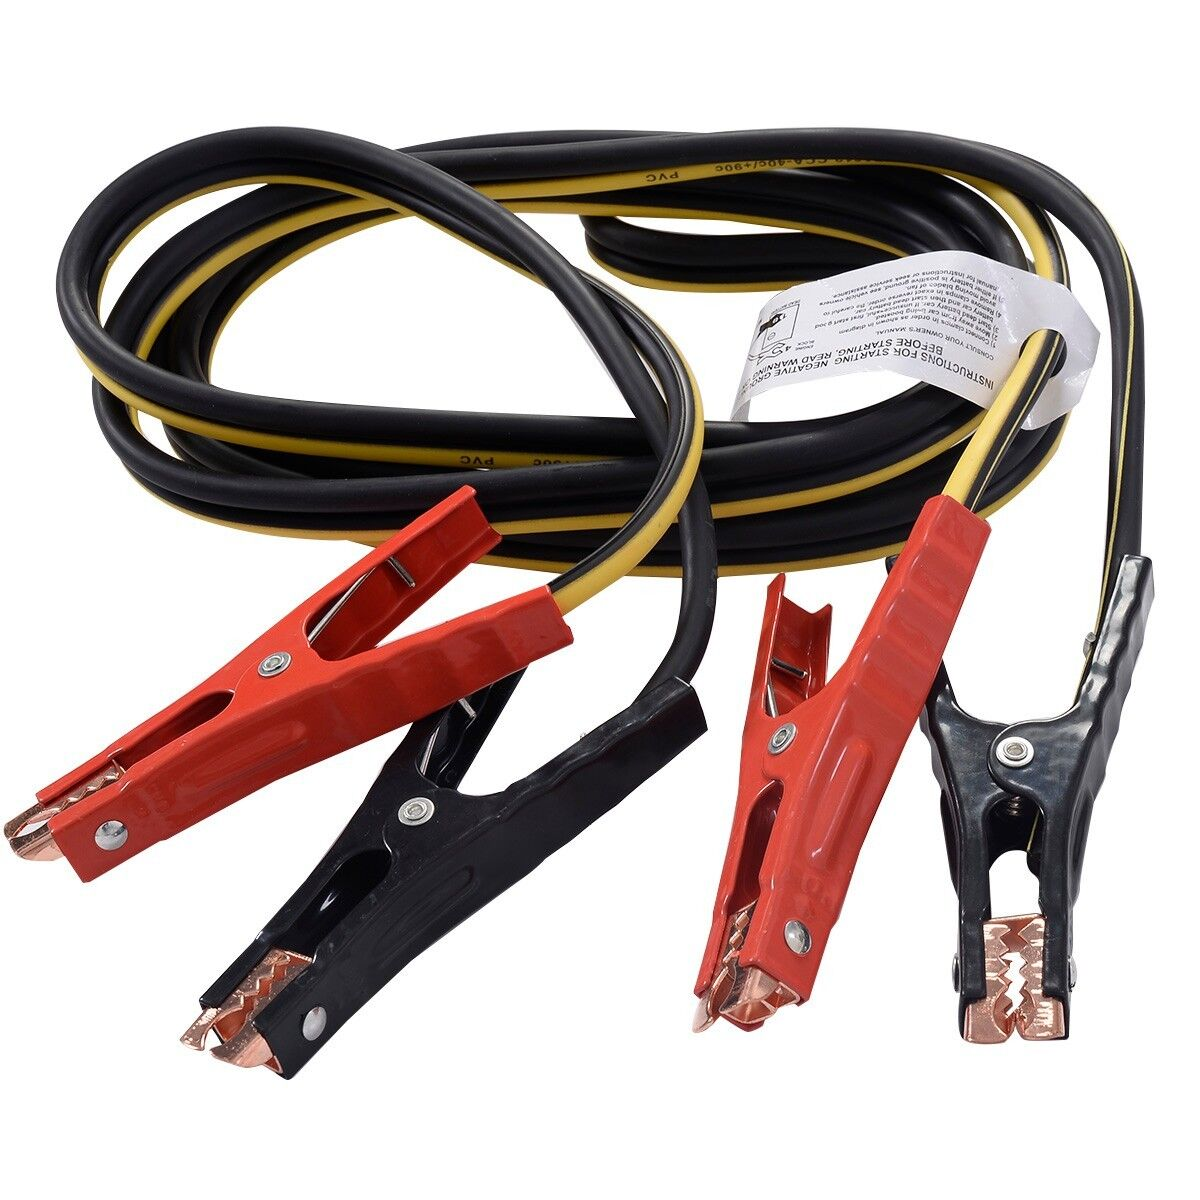 12ft 6 Gague Booster Cable Jumping Cables Power Jumper